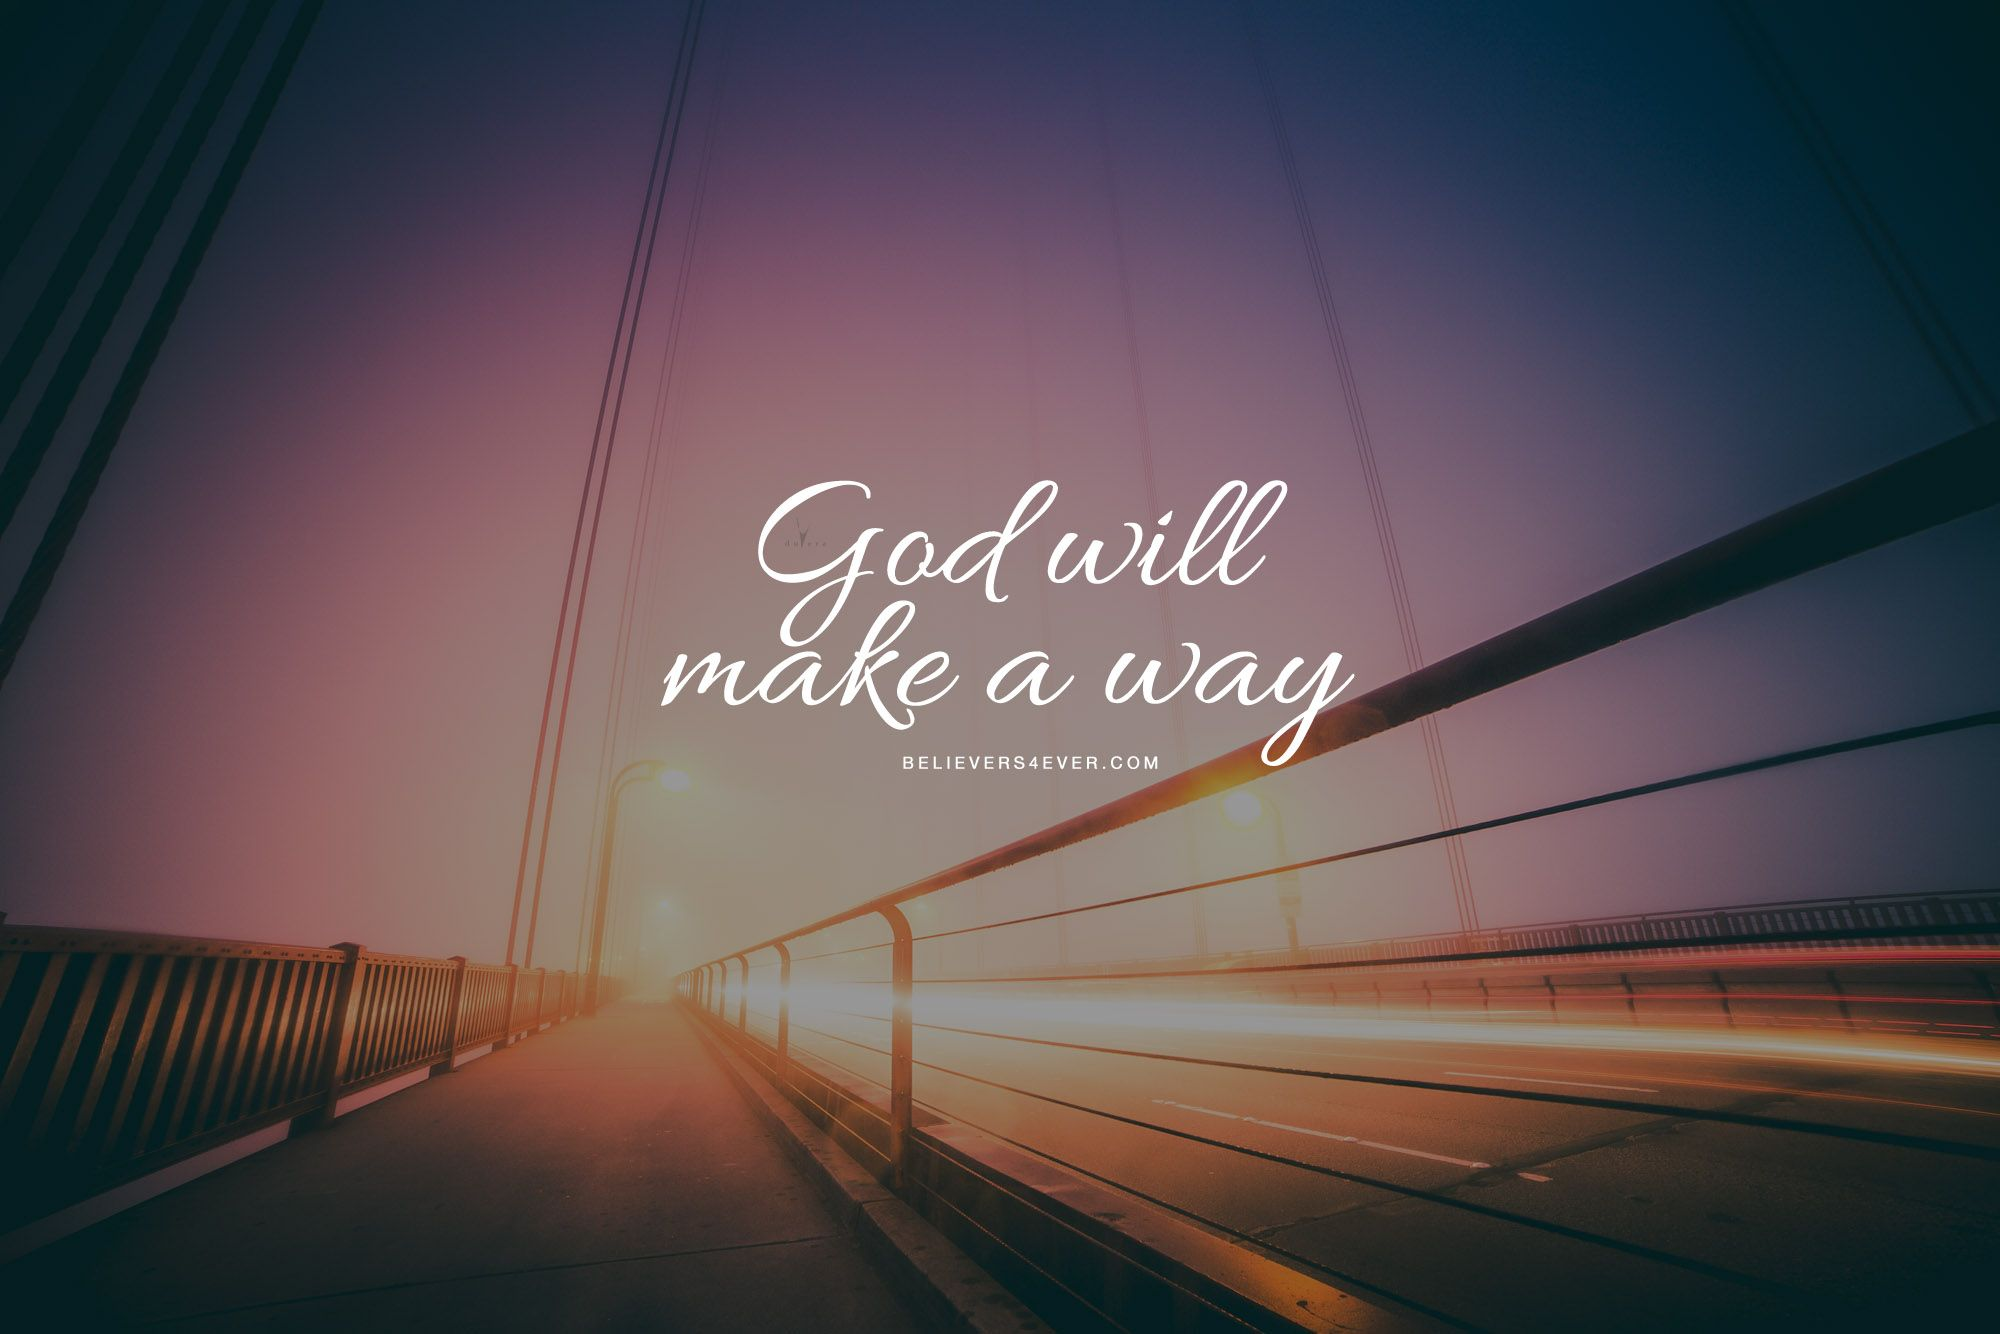 God will make a way Christian quotes Wallpaper bible 2000x1334